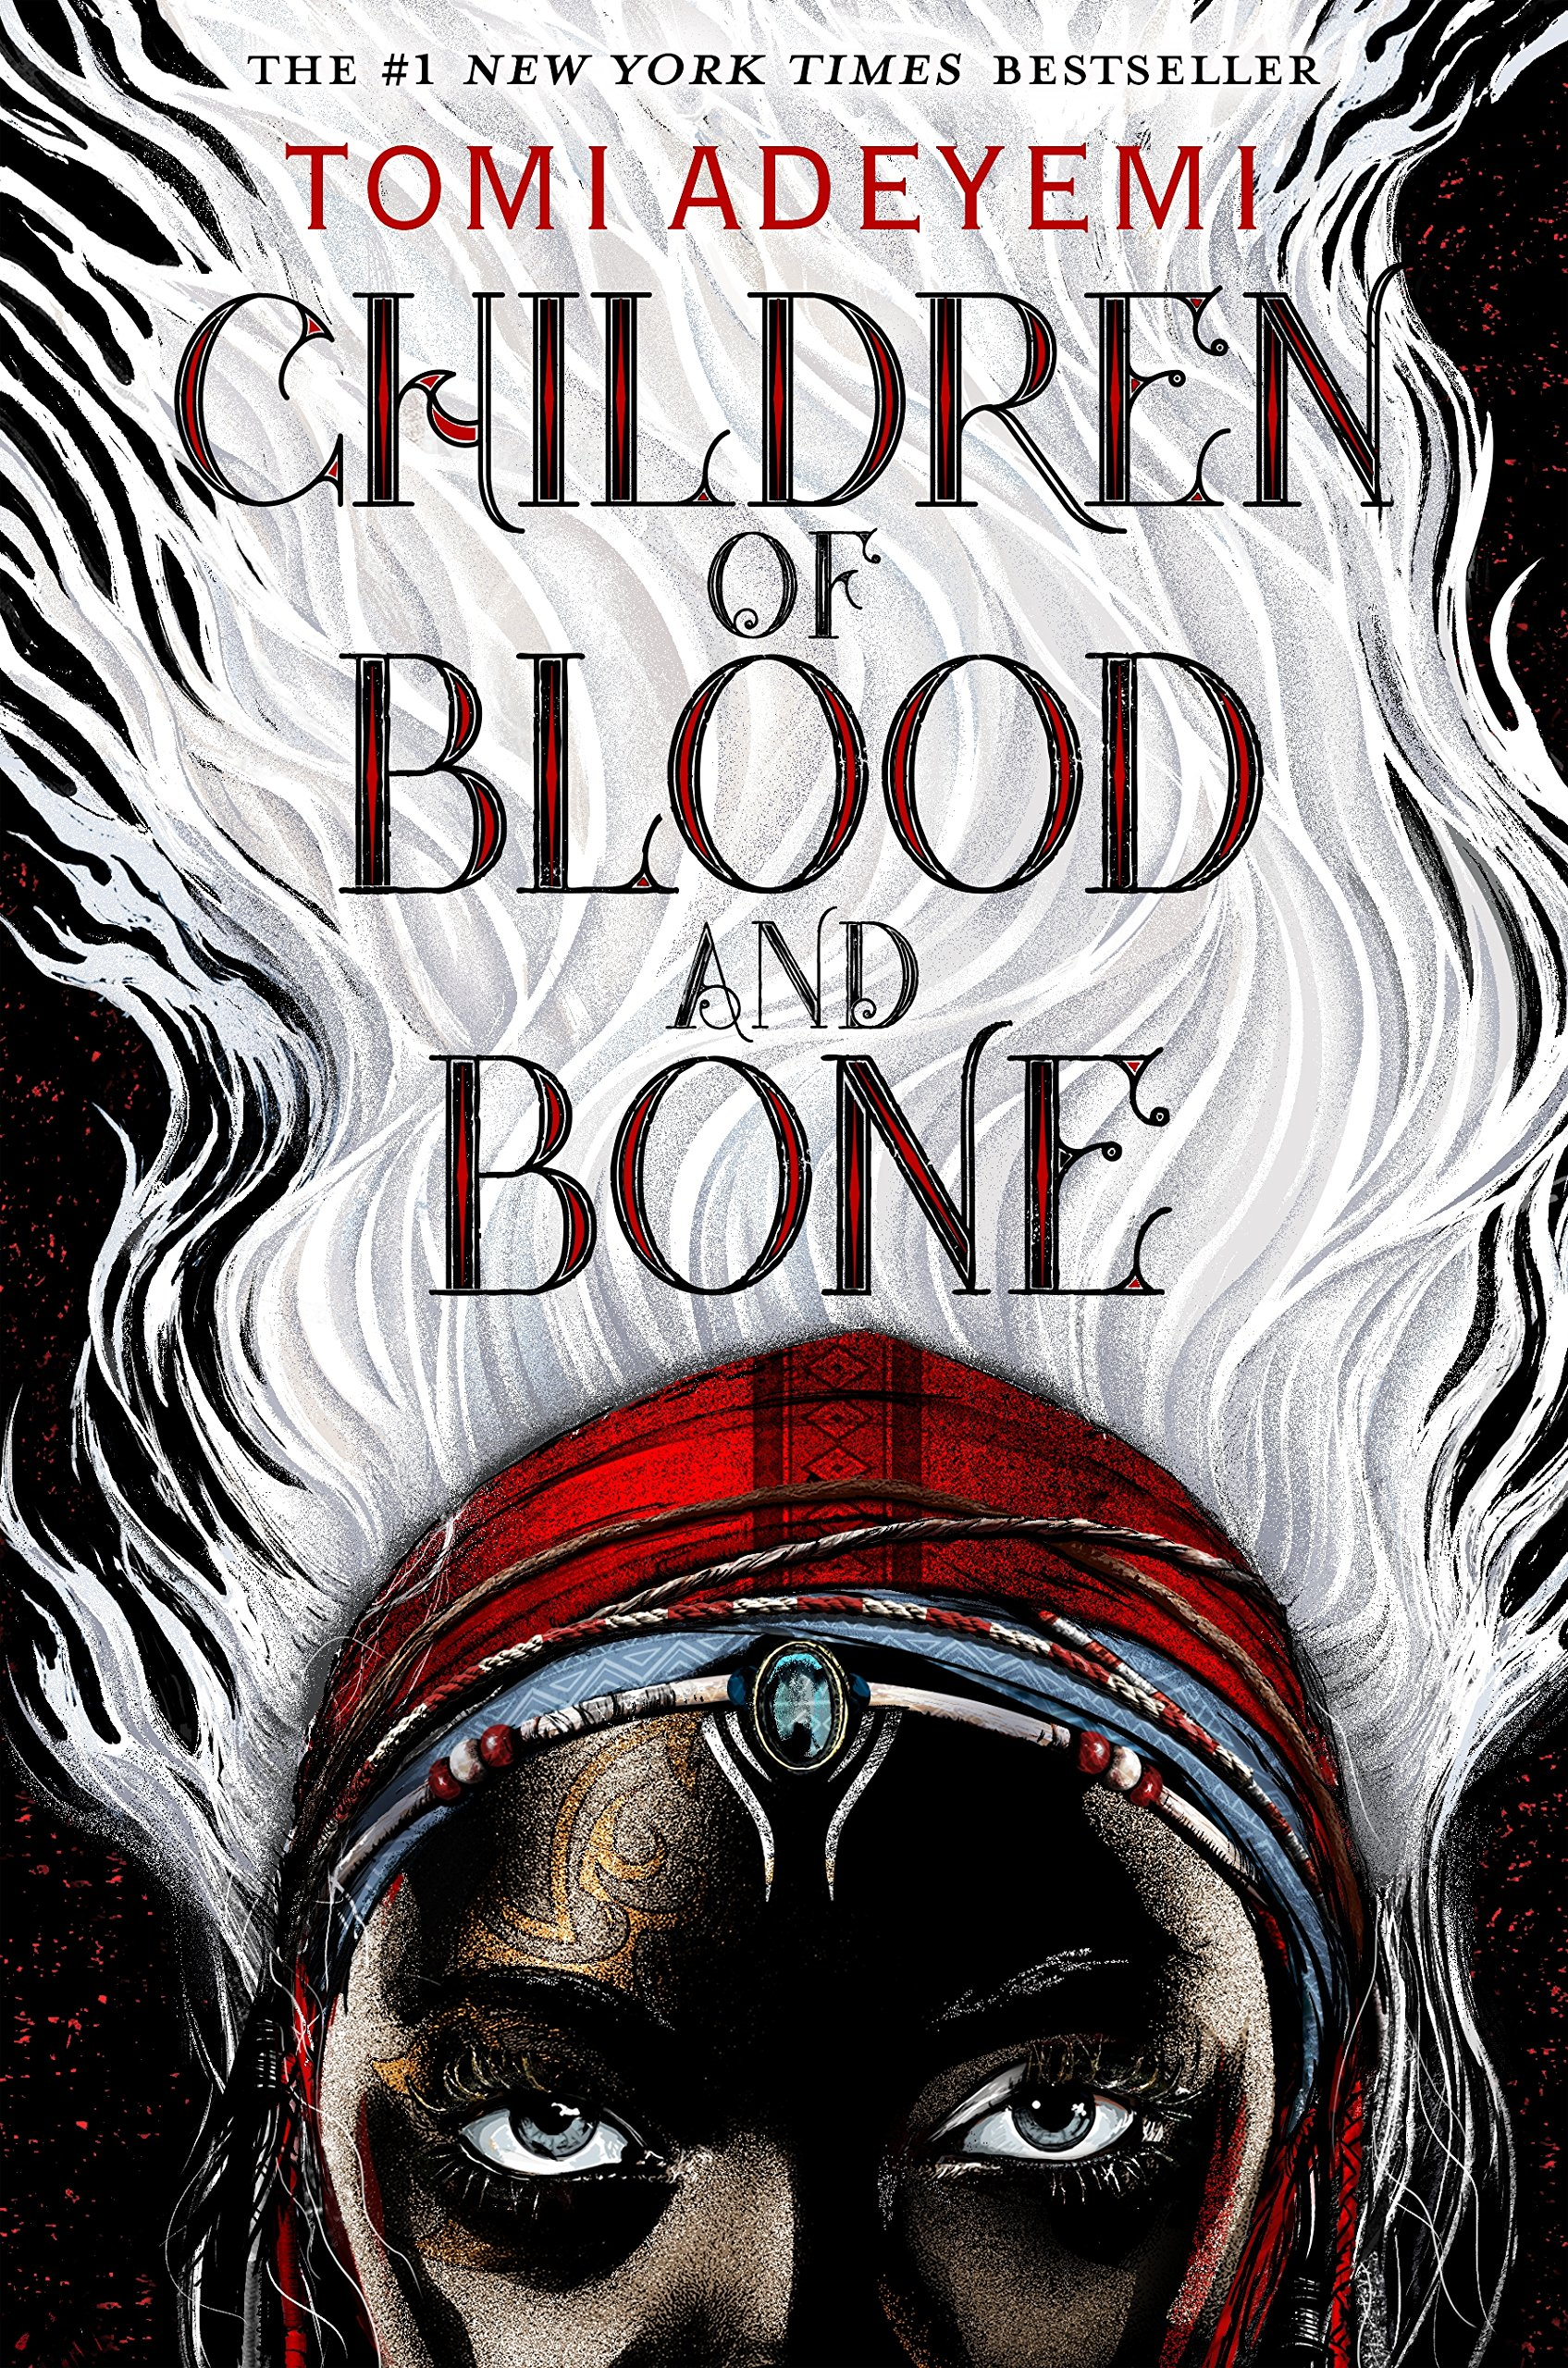 book cover of Children of Blood and Bone featuring illustration of upper half of the face of a beautiful, mysterious woman with long white hair rising up behind her.